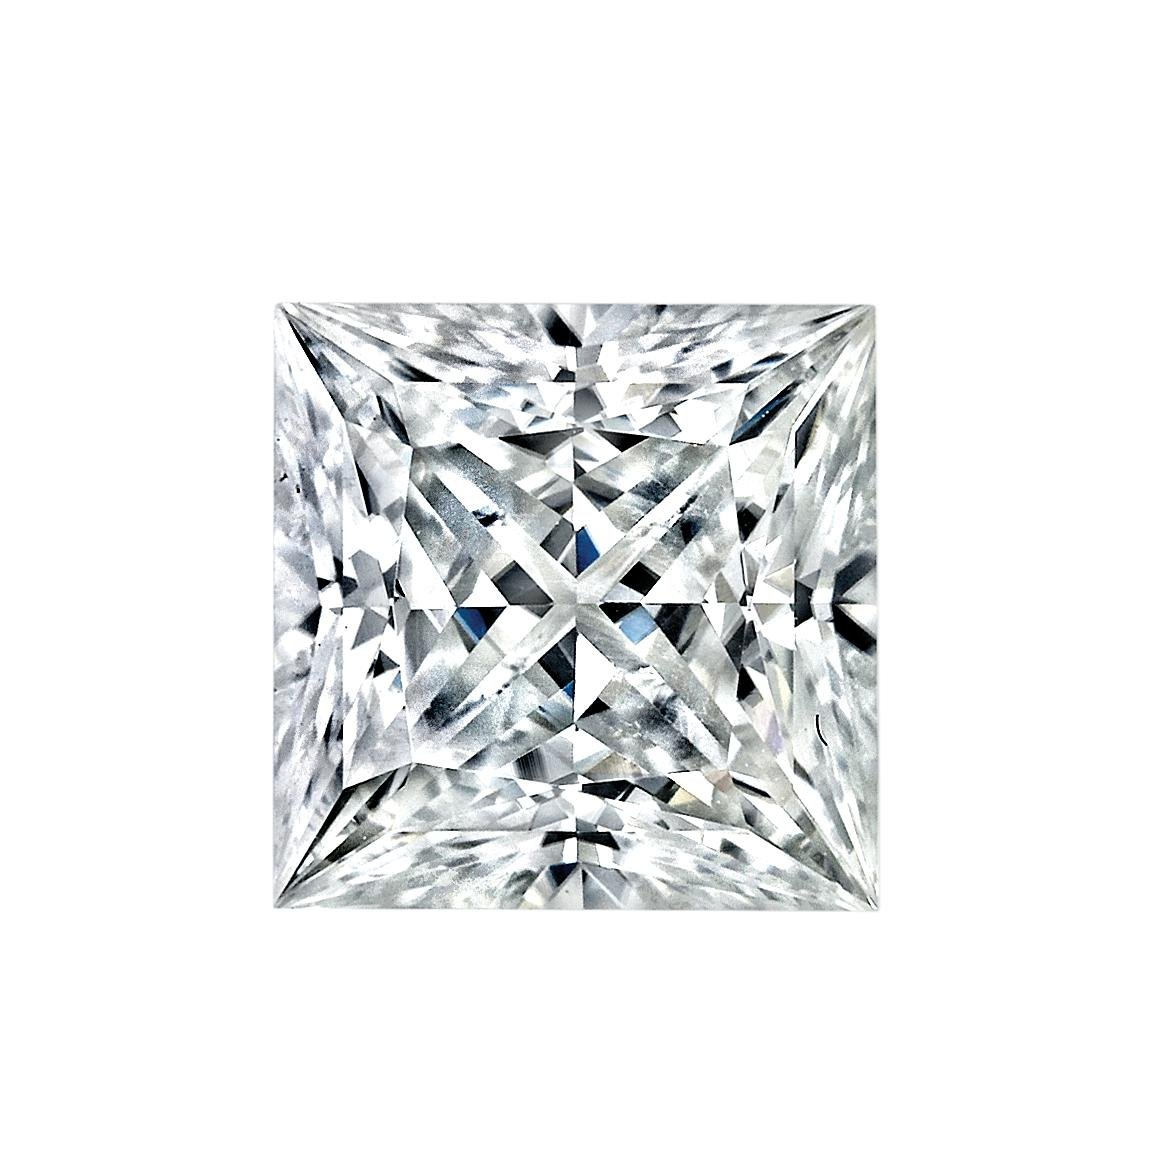 5.5MM Princess Cut Forever Classic Moissanite by Charles & Colvard - Very Good Cut (0.83ct Actual Weight, 0.90ct. Diamond Equivalent Weight)